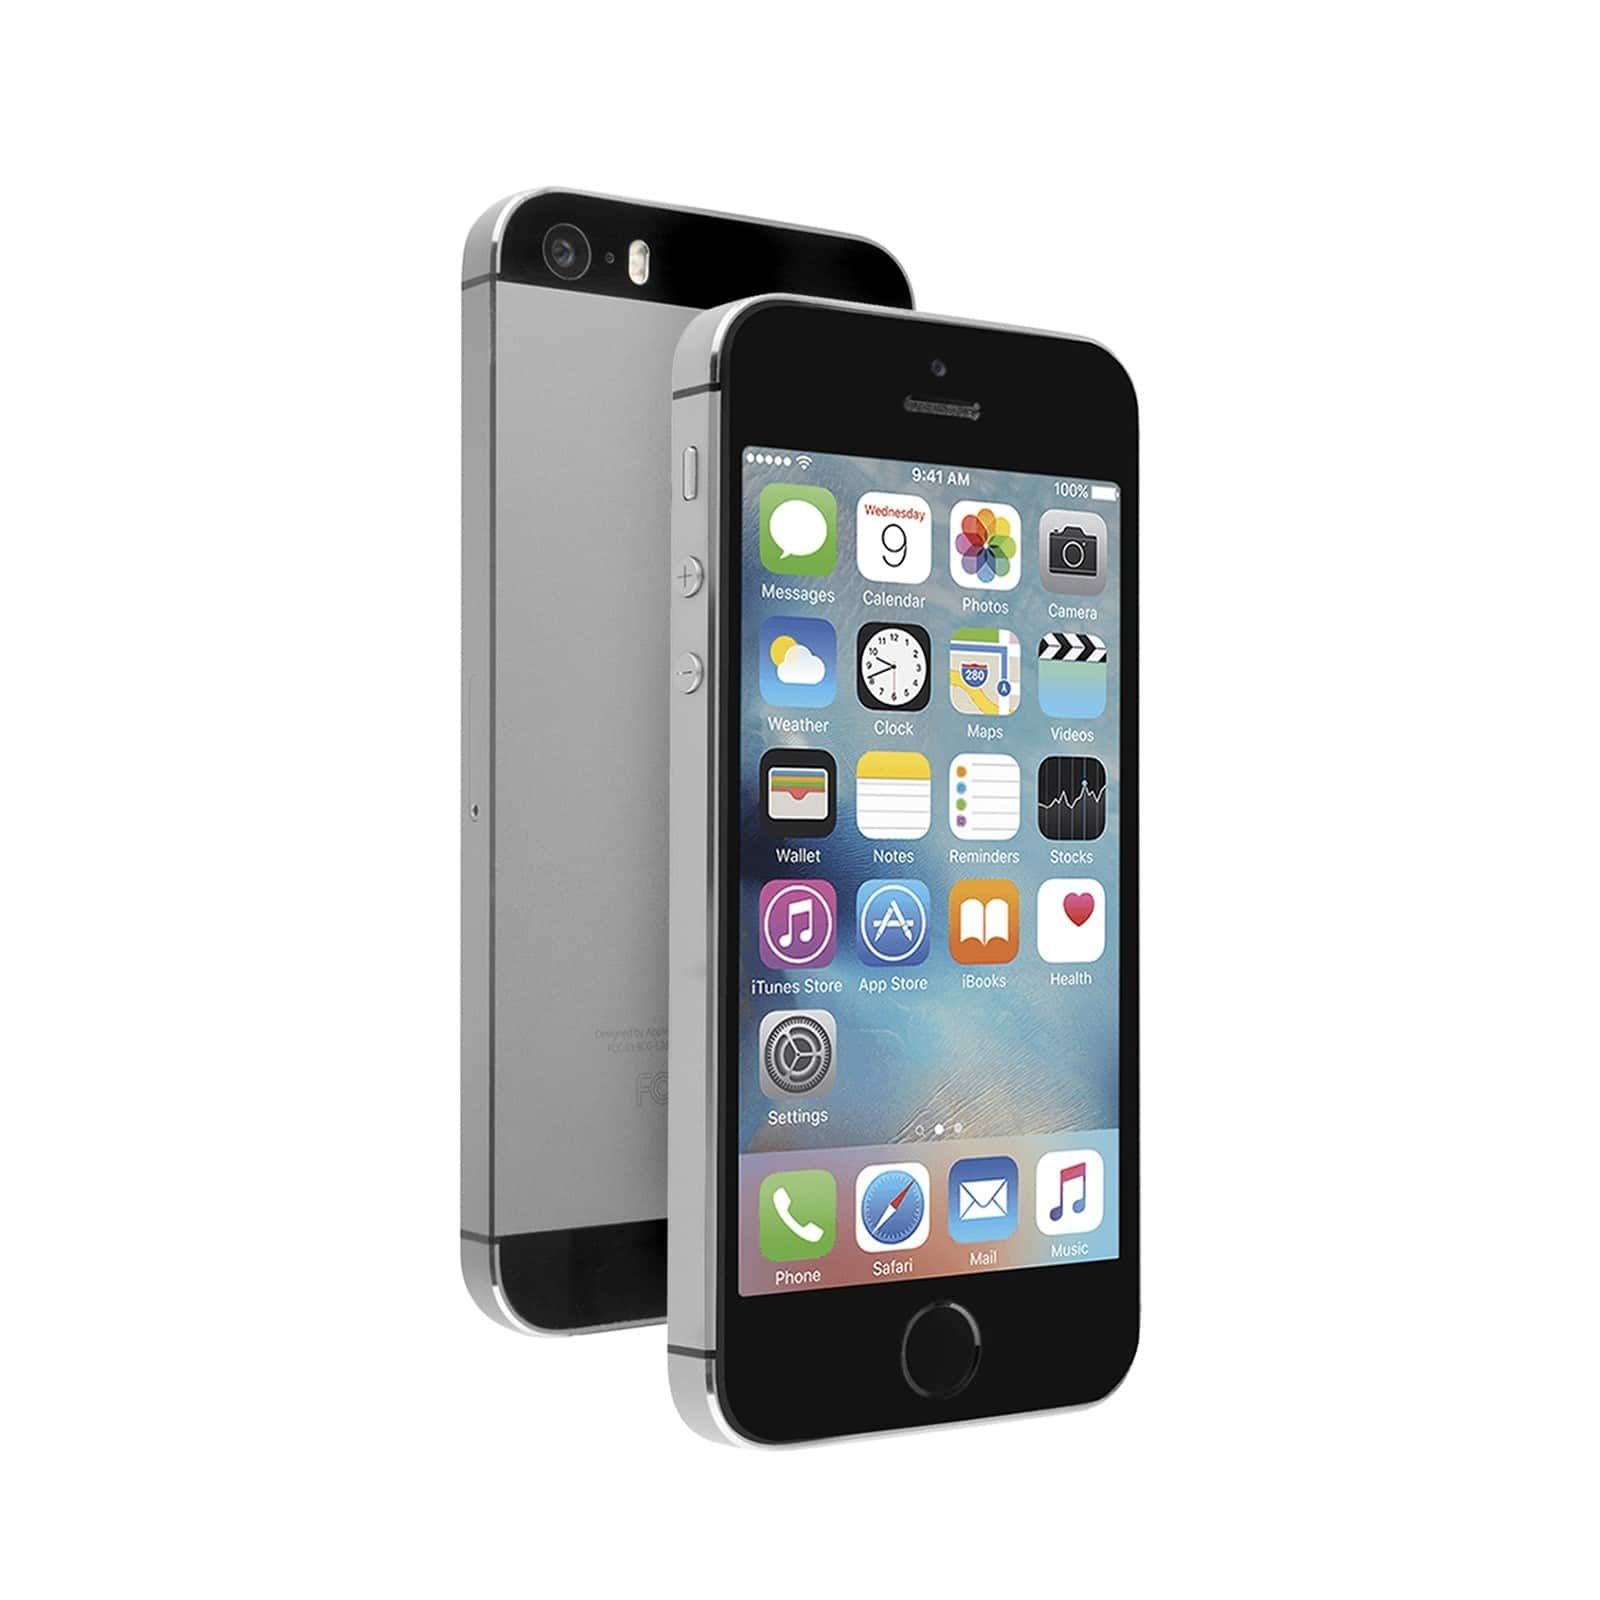 16GB Apple iPhone 5s Unlocked GSM Smartphone (Refurb, various colors) $100 + Free Shipping